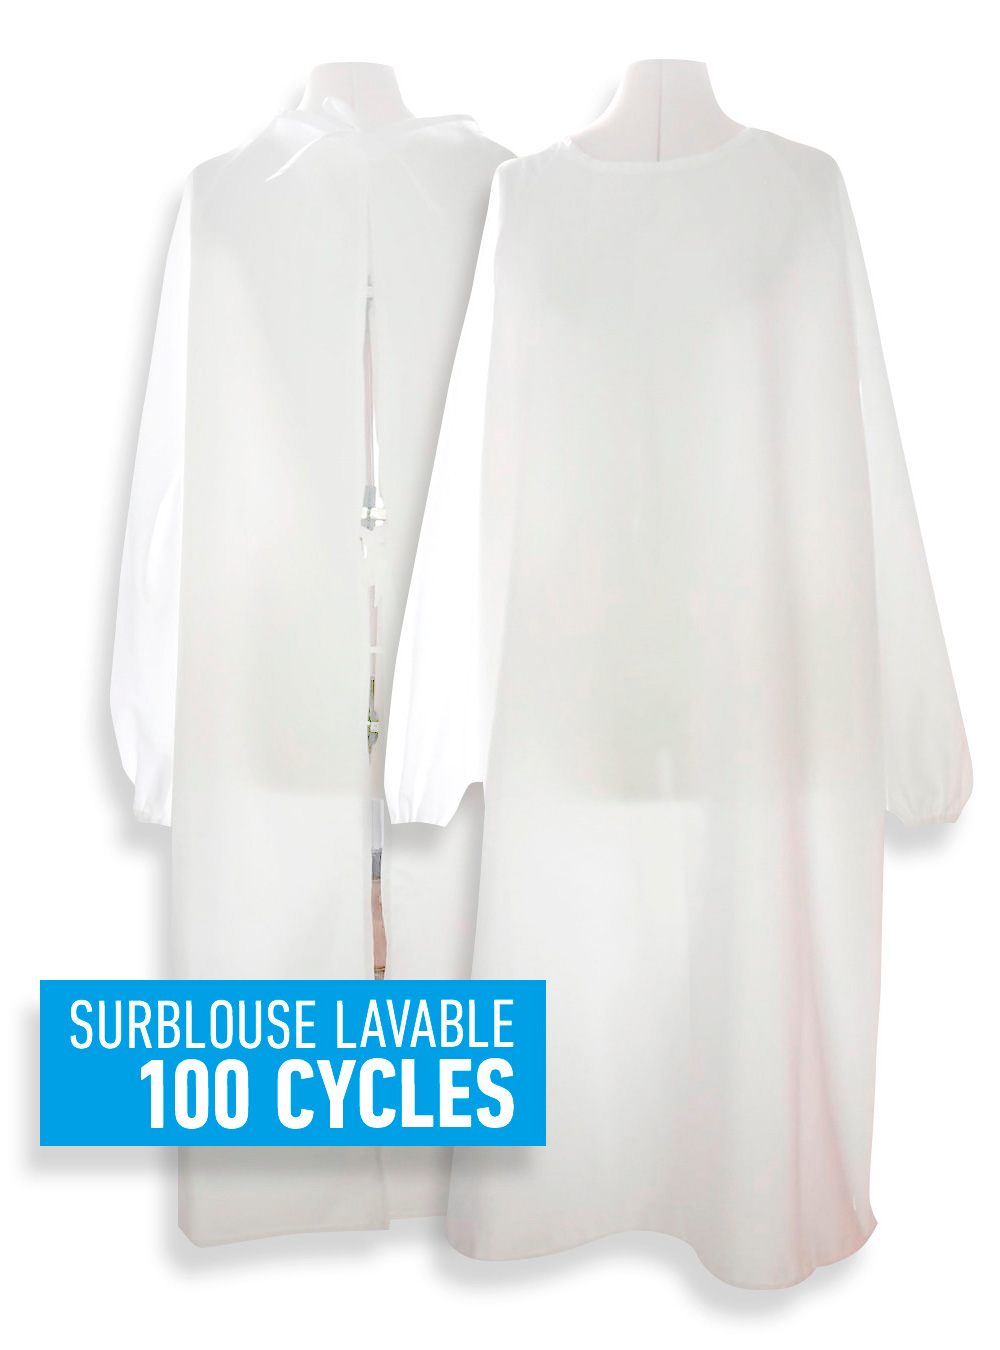 Surblouse lavable 100 cycles